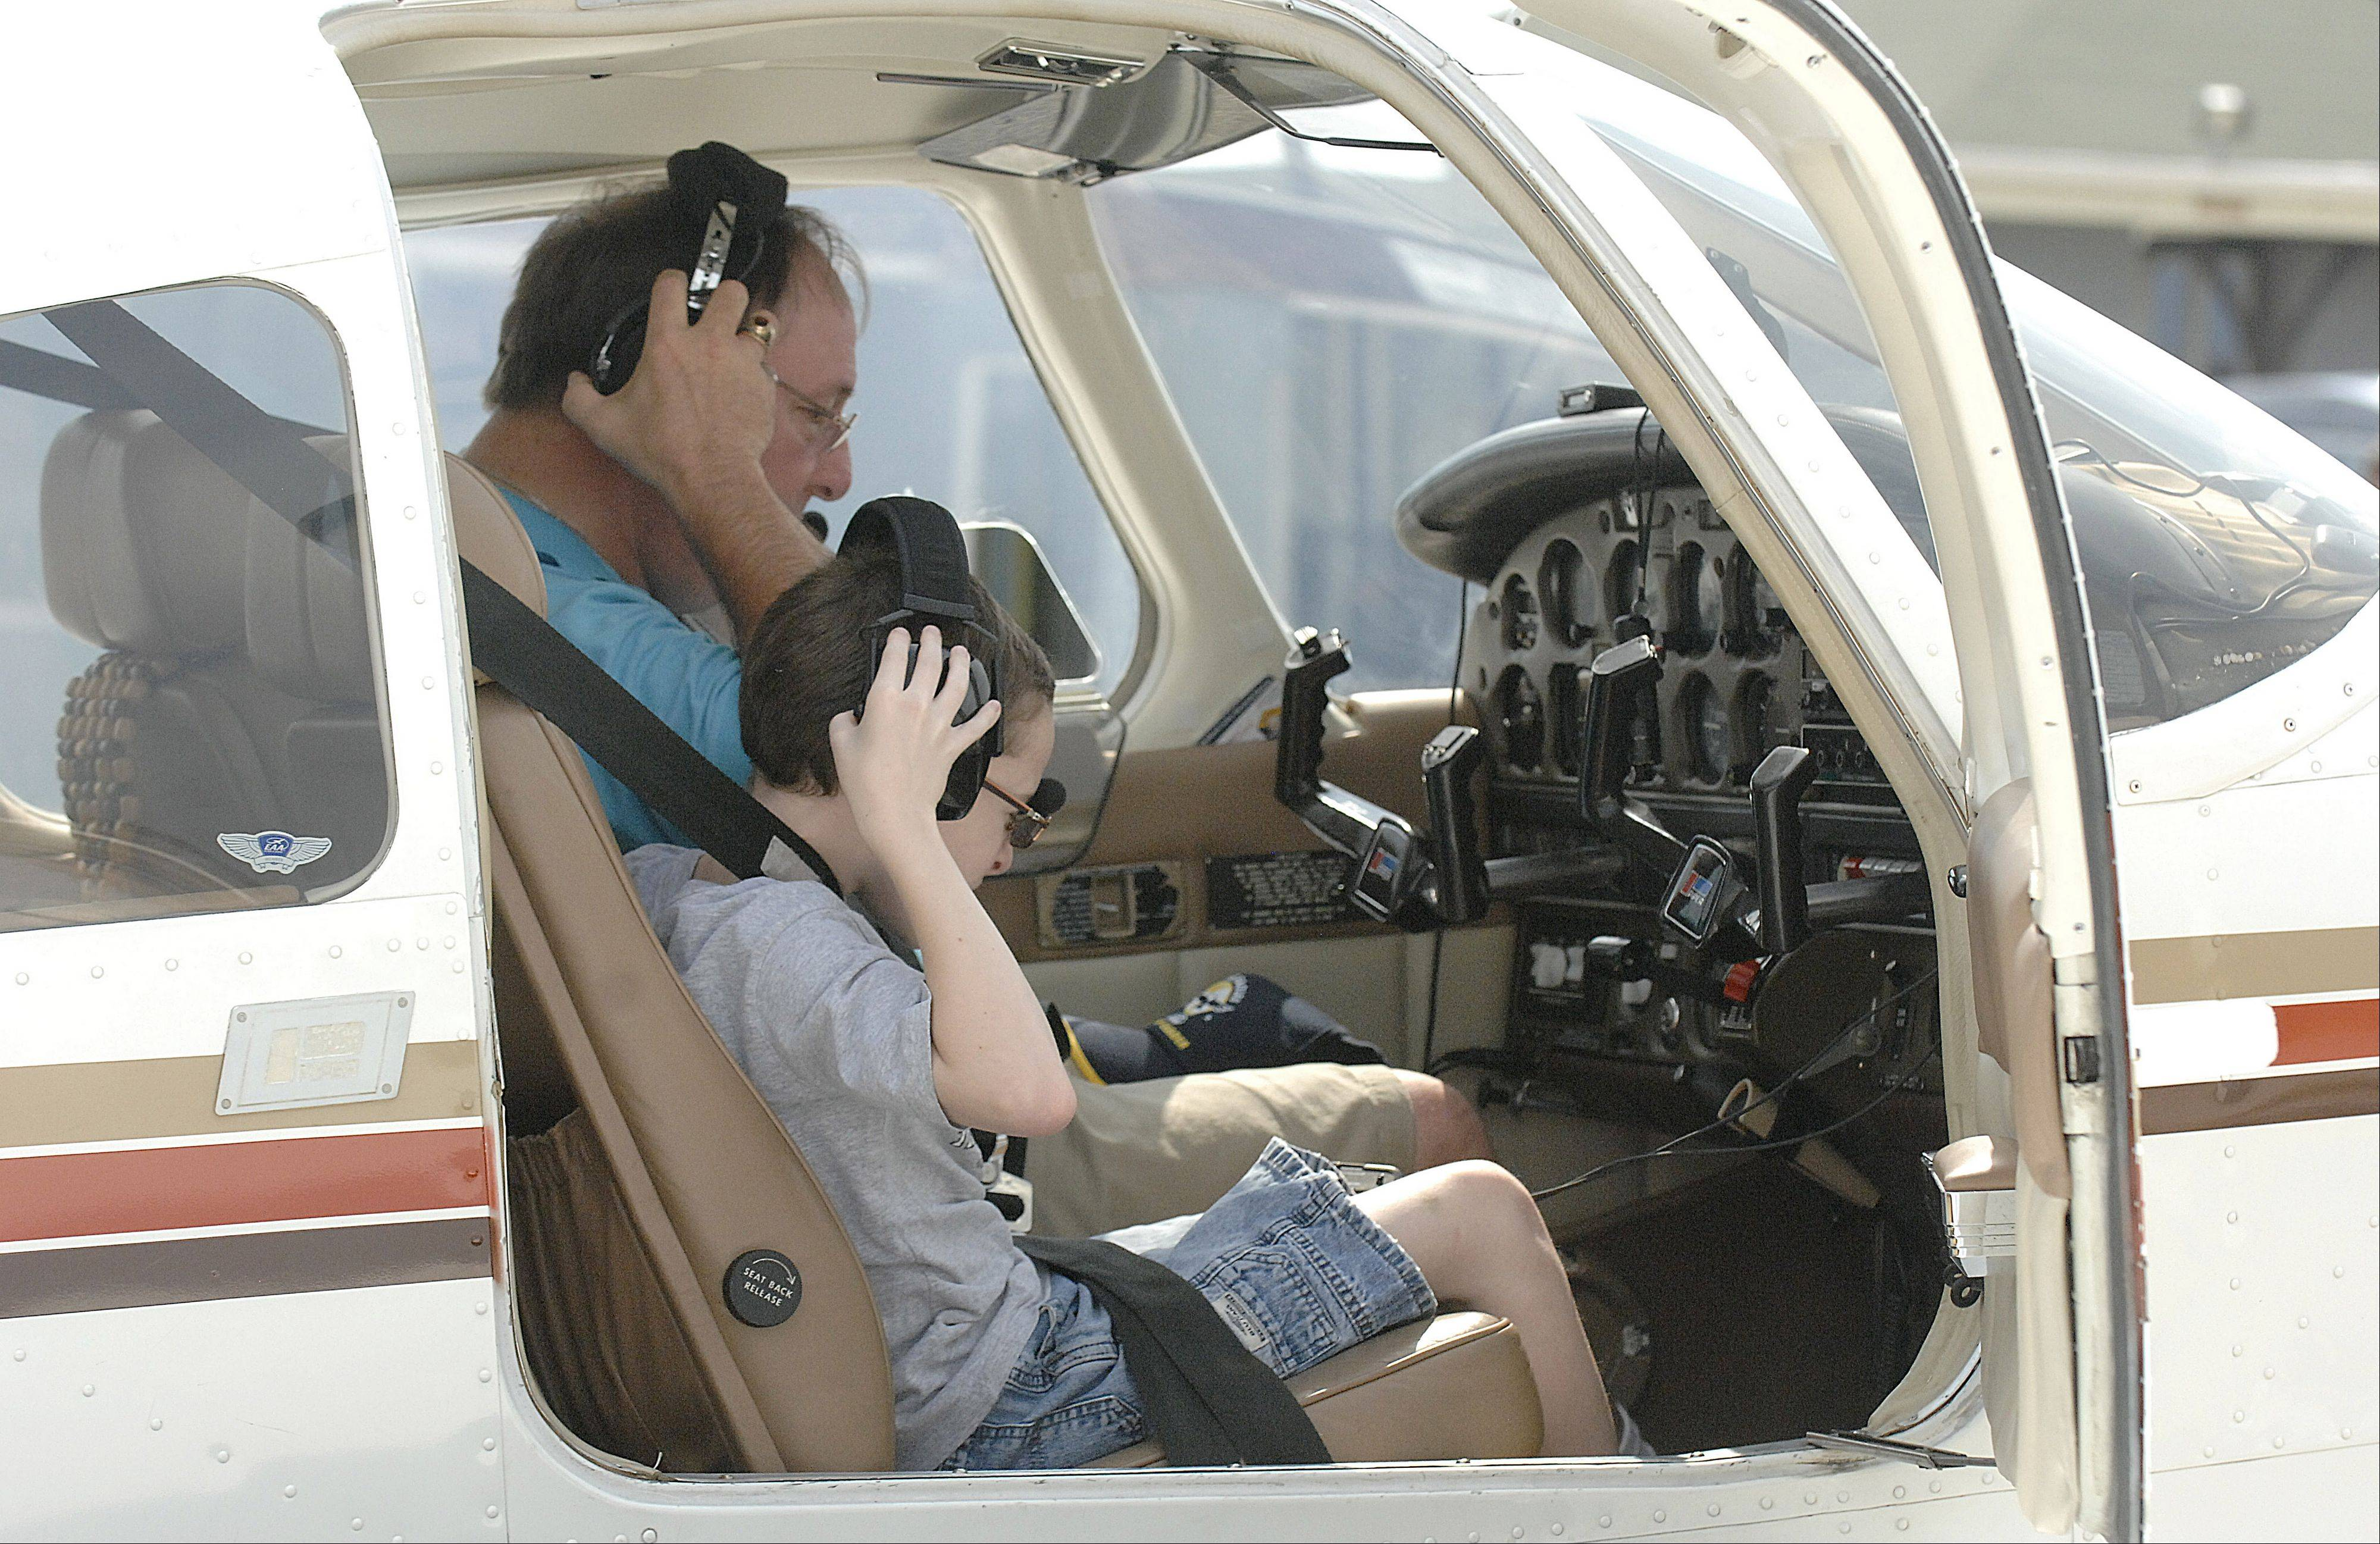 Robert Hartgraves, 12, of Lake in the Hills dons headphones with pilot Joe Sener of Crystal Lake before taking off in Sener's Piper Dakota plane at Lake in the Hills Airport on Saturday. The Young Eagles event offered free flights for children ages 8 to 17.